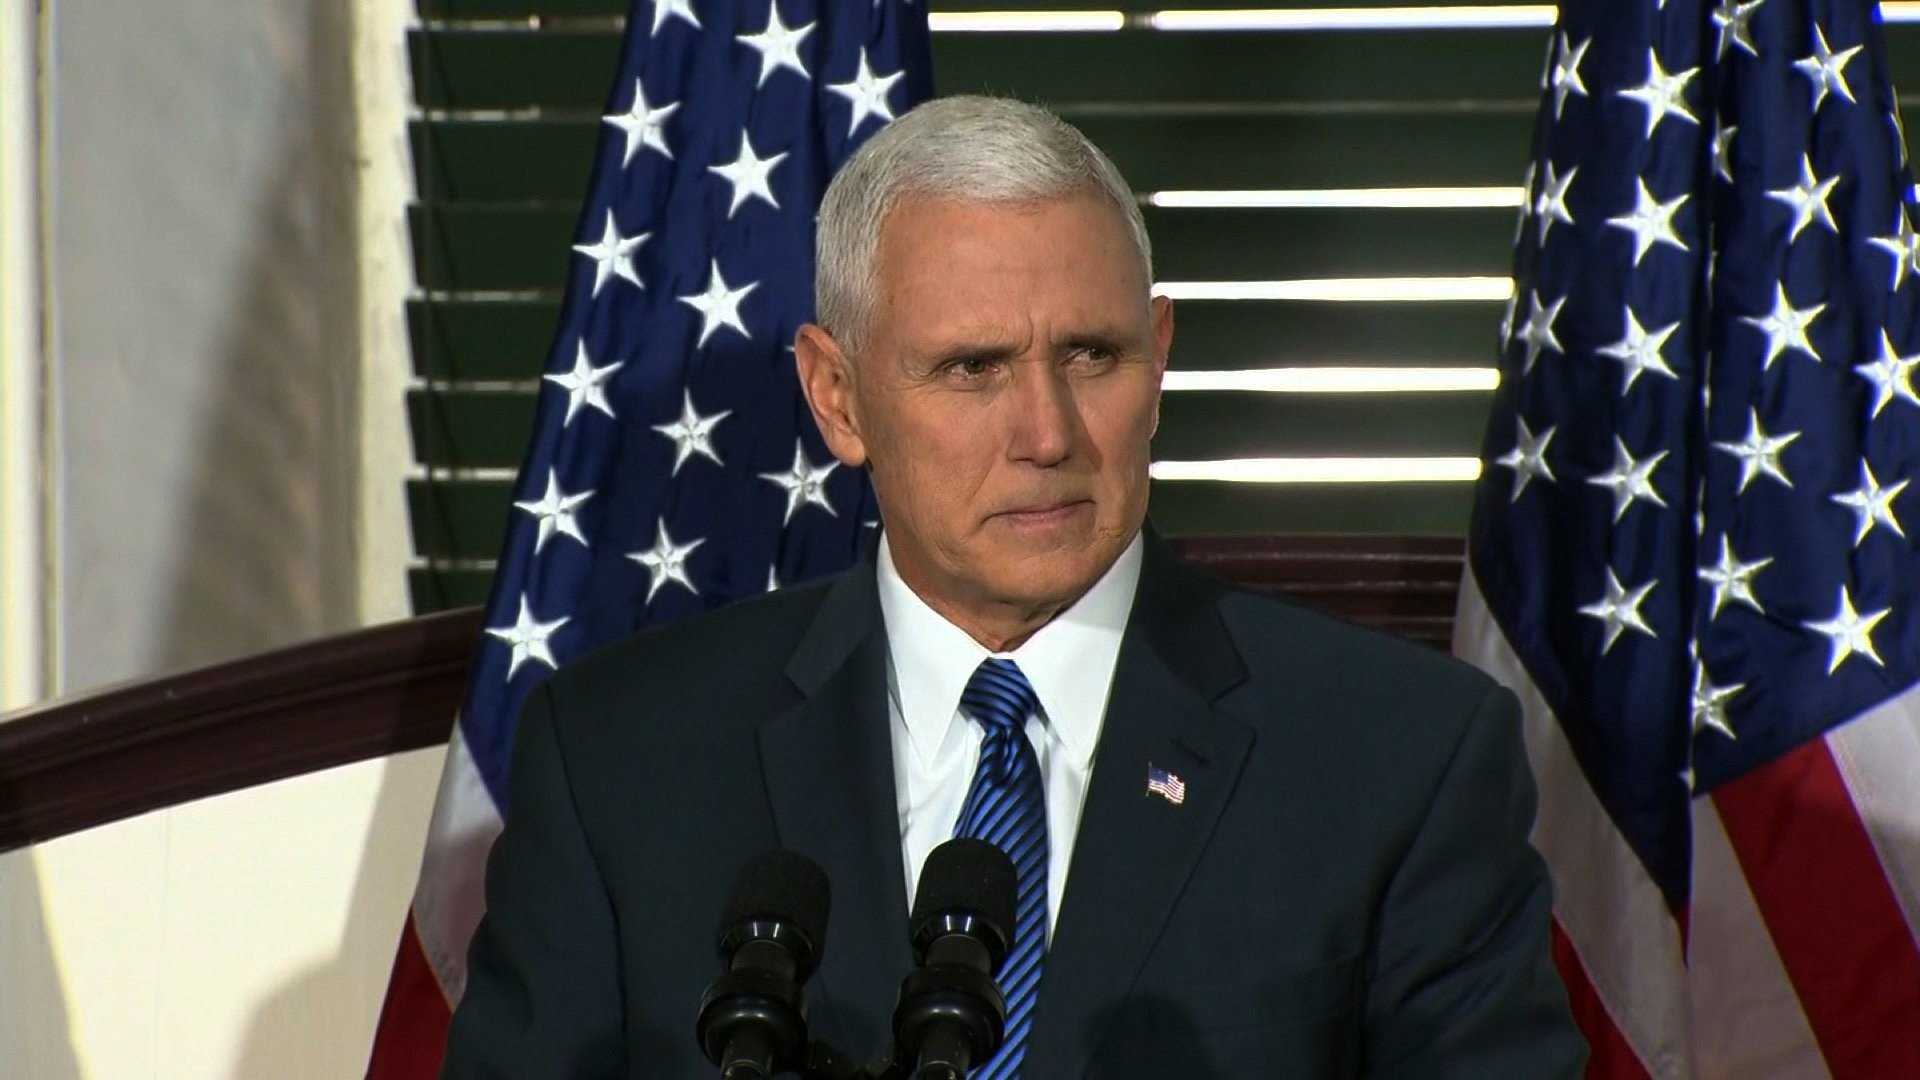 Vice President Mike Pence is venturing to a place that President Donald Trump has yet to visit since his swearing-in: California. Pence will travel to the predominantly Democratic state Sunday for a fundraising swing, according to a source close to the ad